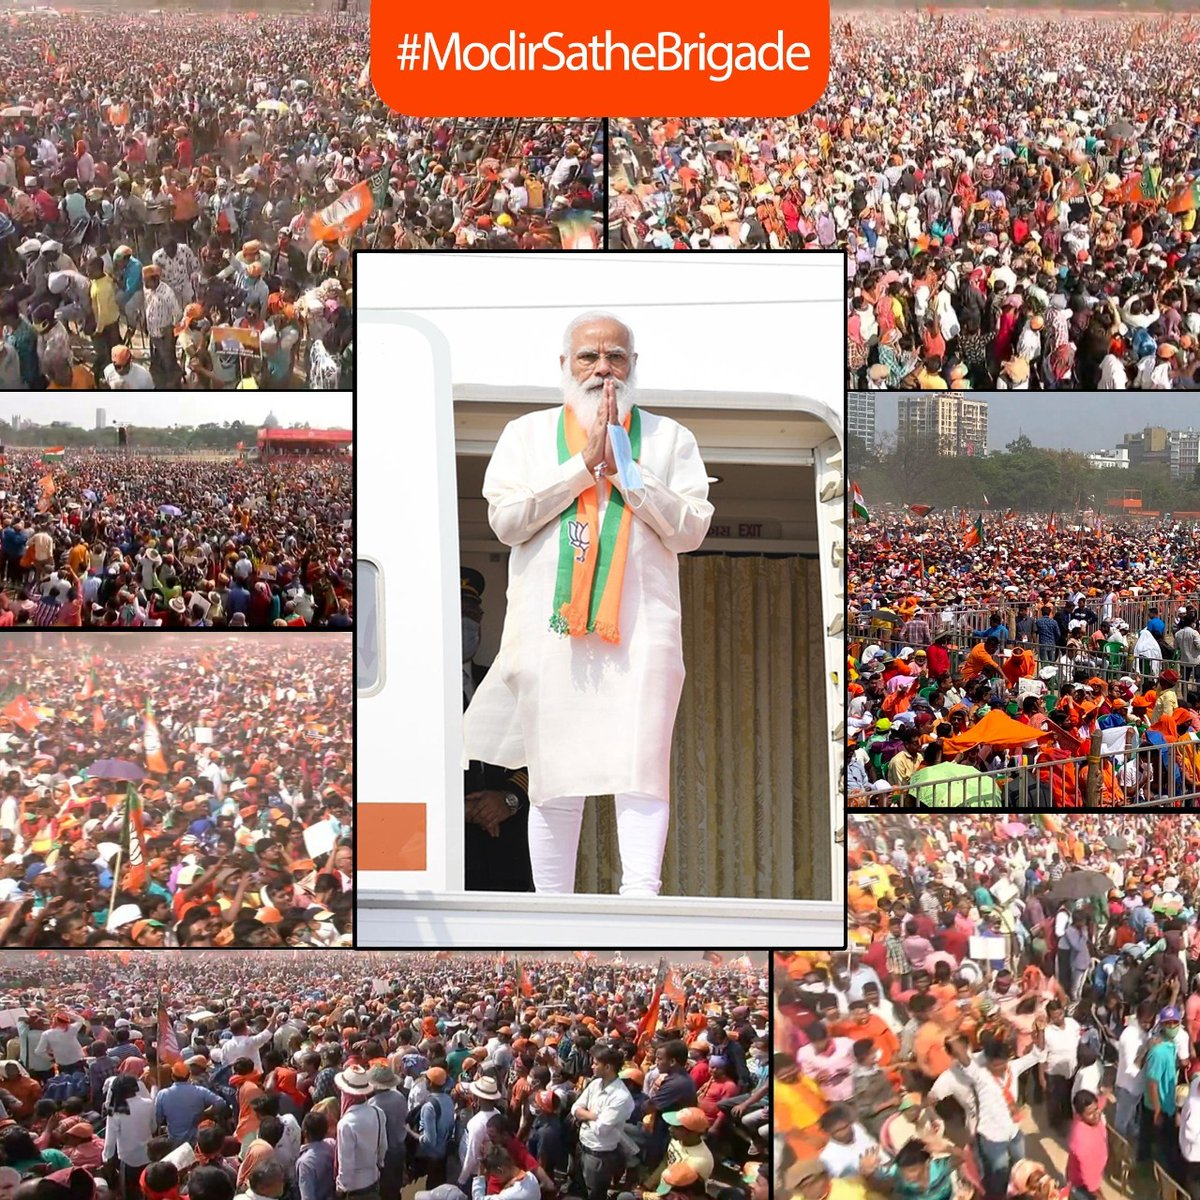 Bengal's love and affection for PM @narendramodi and exasperation to get rid of TMC government manifest in this gigantic gathering! #ModirSatheBrigade